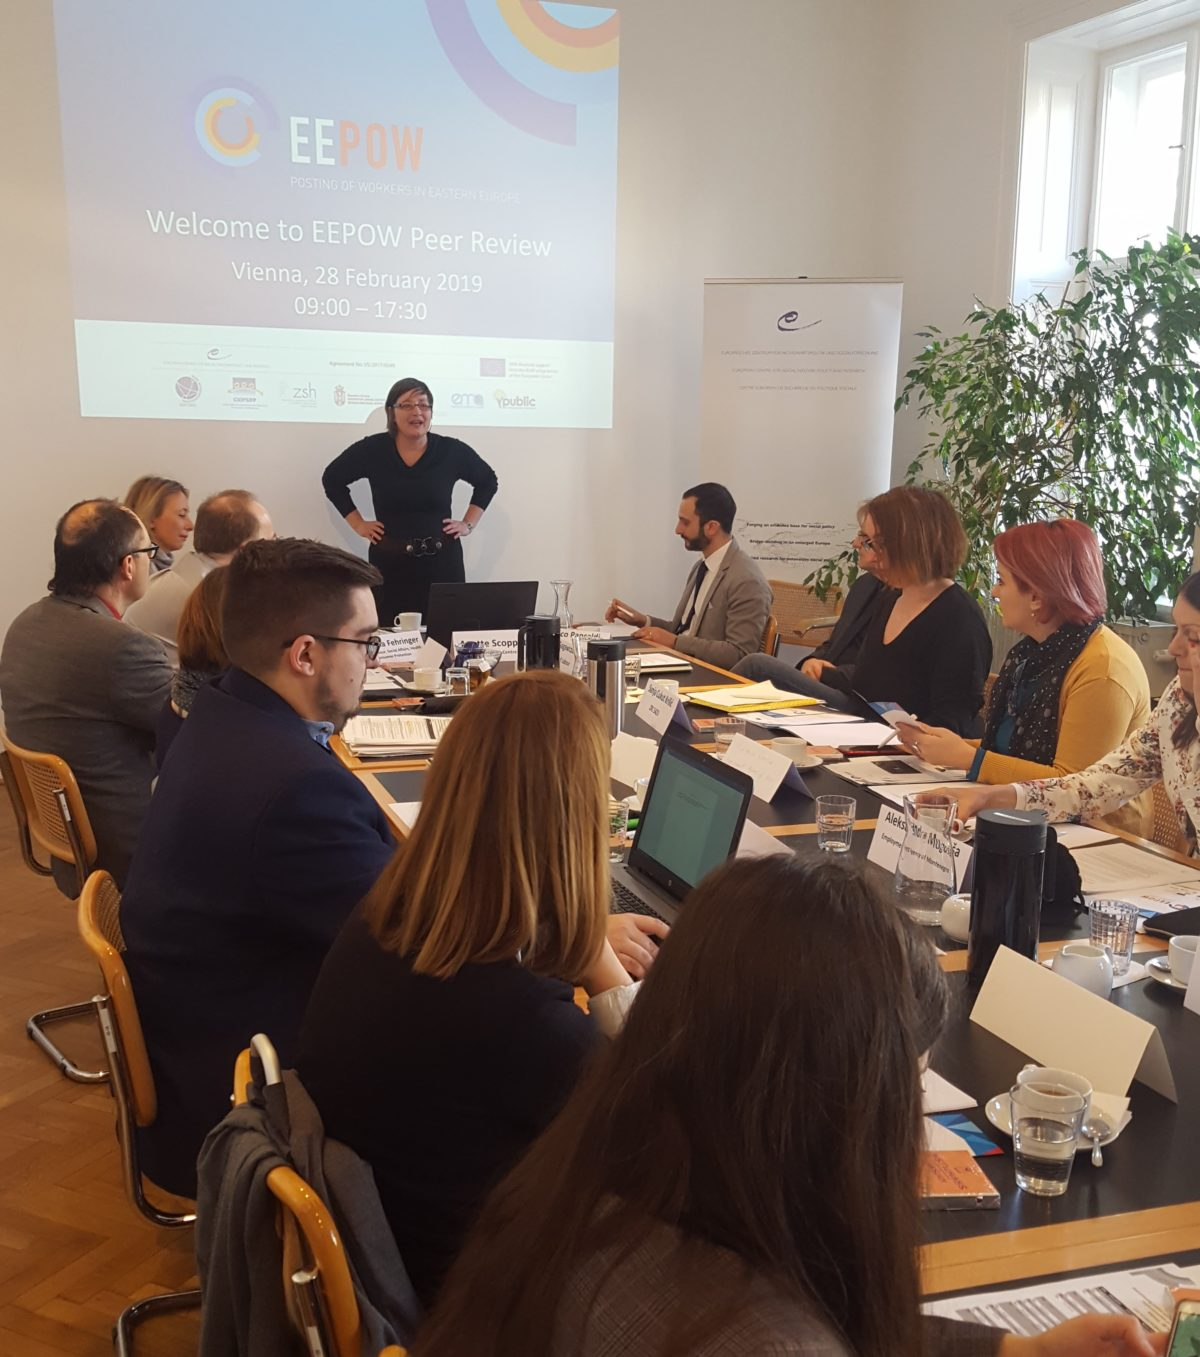 28/2/19: EEPOW Peer Review on guaranteeing posted workers' rights, Vienna, Austria